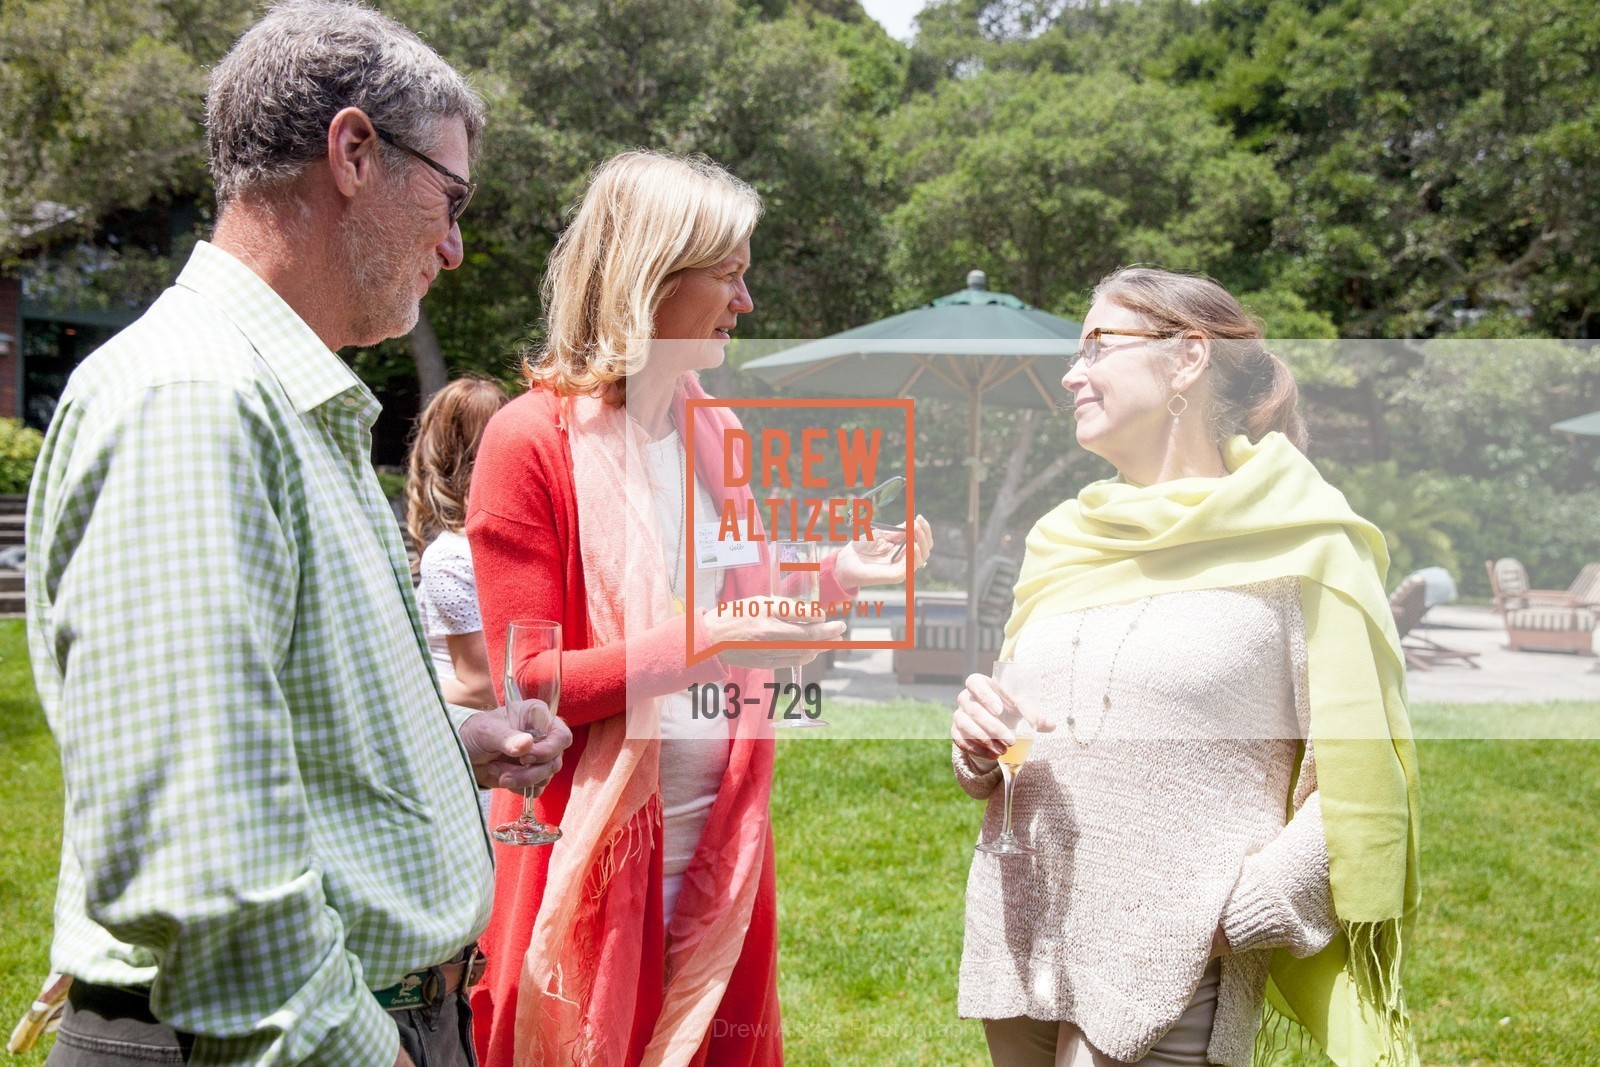 Anki Gelb, Kate Weese, THE TRUST FOR PUBLIC LAND Luncheon Hosted by THE DREVER FAMILY FOUNDATION, US, May 15th, 2015,Drew Altizer, Drew Altizer Photography, full-service agency, private events, San Francisco photographer, photographer california